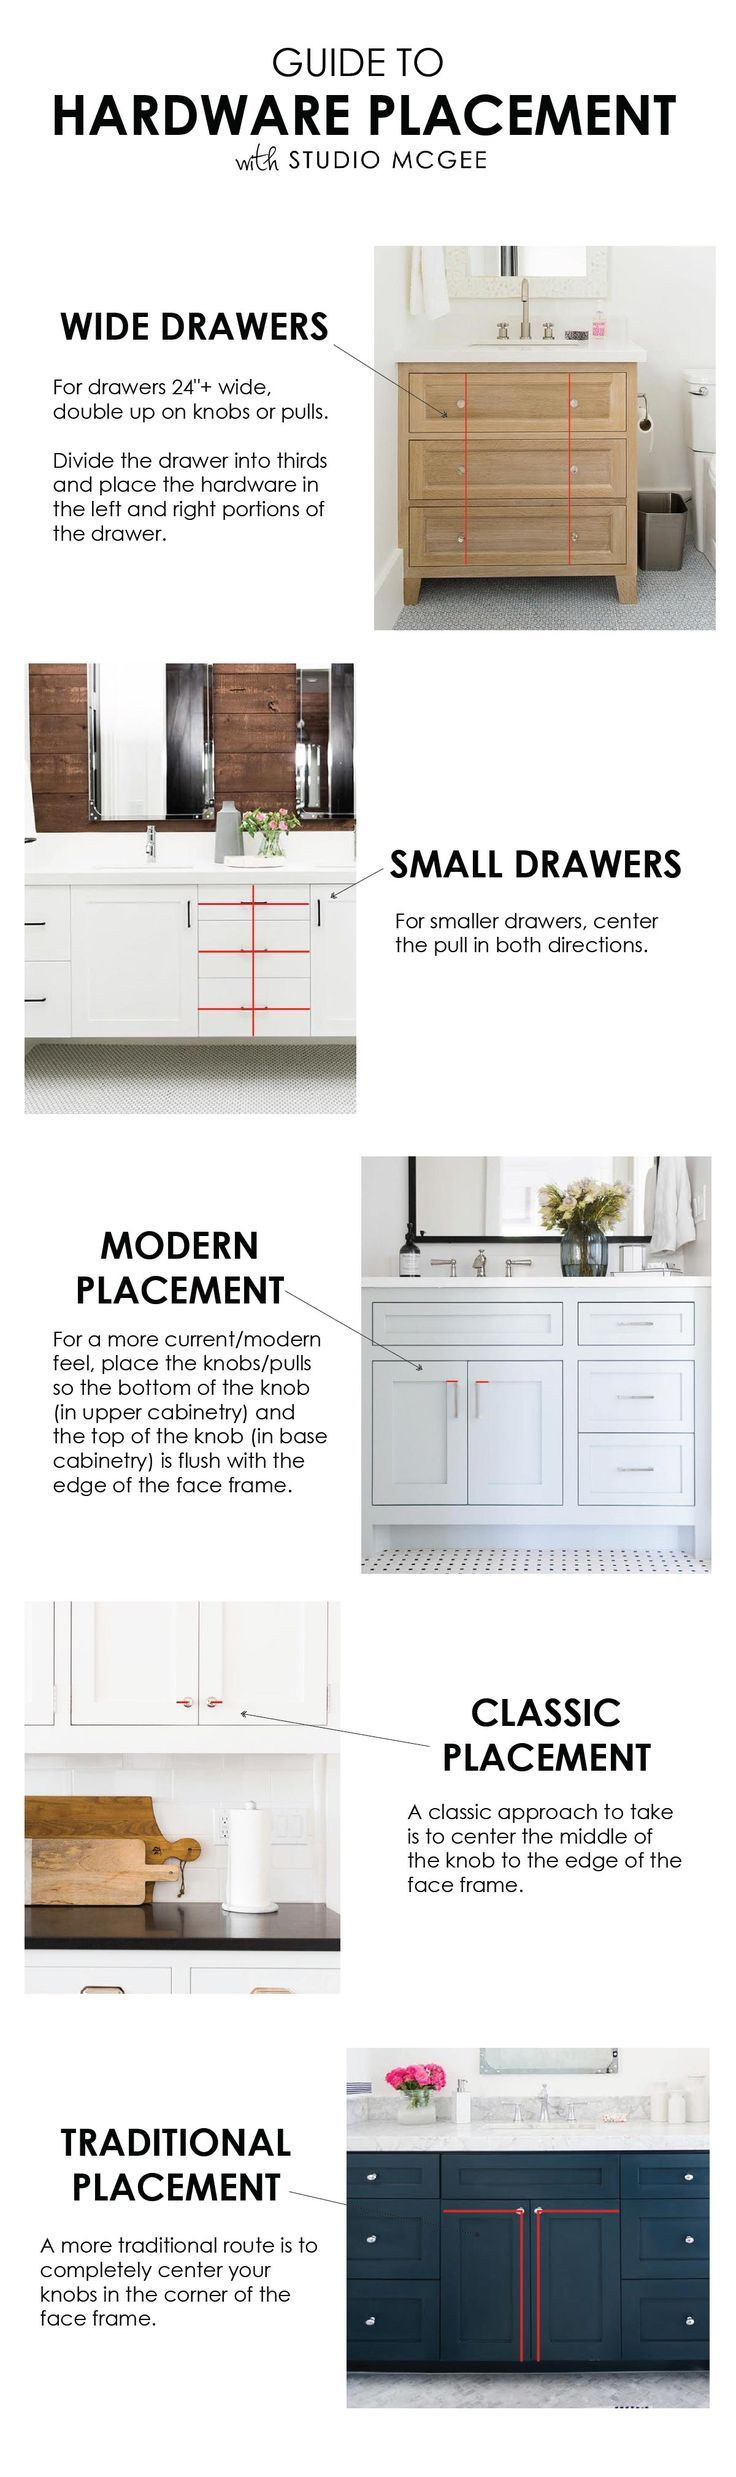 Cabinet Hardware Placement Guide   Studio McGee   Cabinet hardware ...